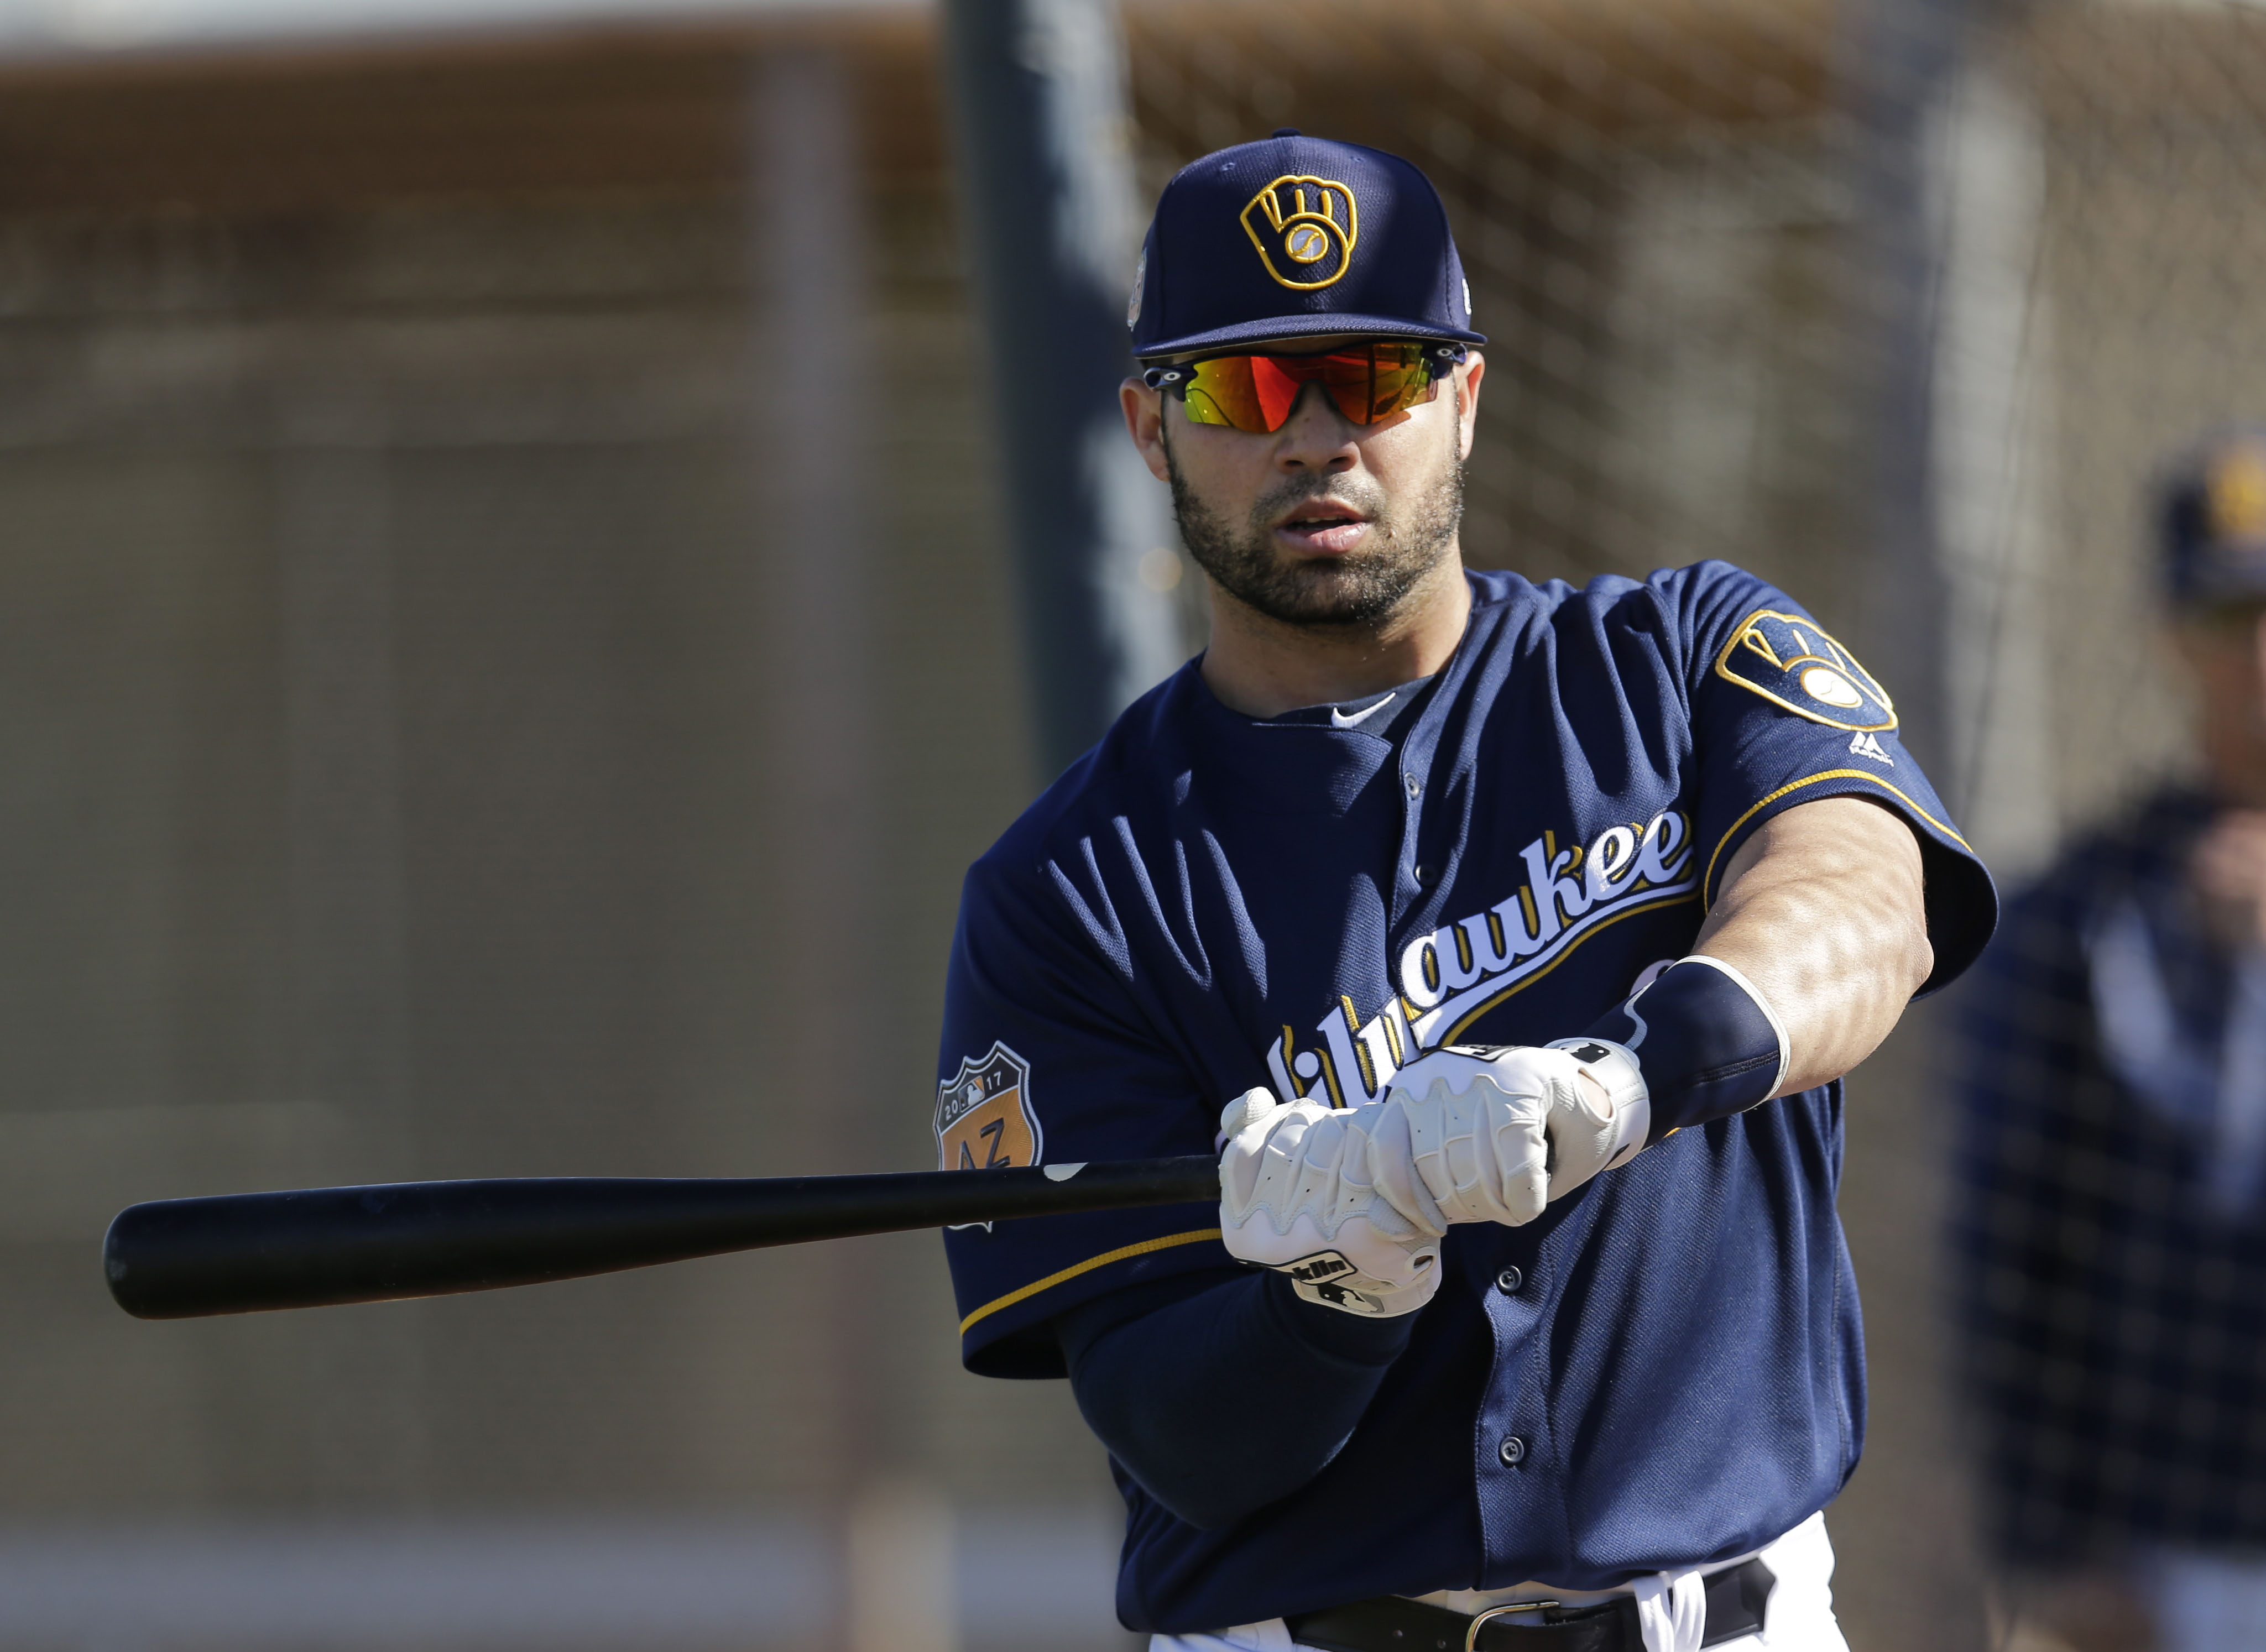 9880968-mlb-milwaukee-brewers-workouts